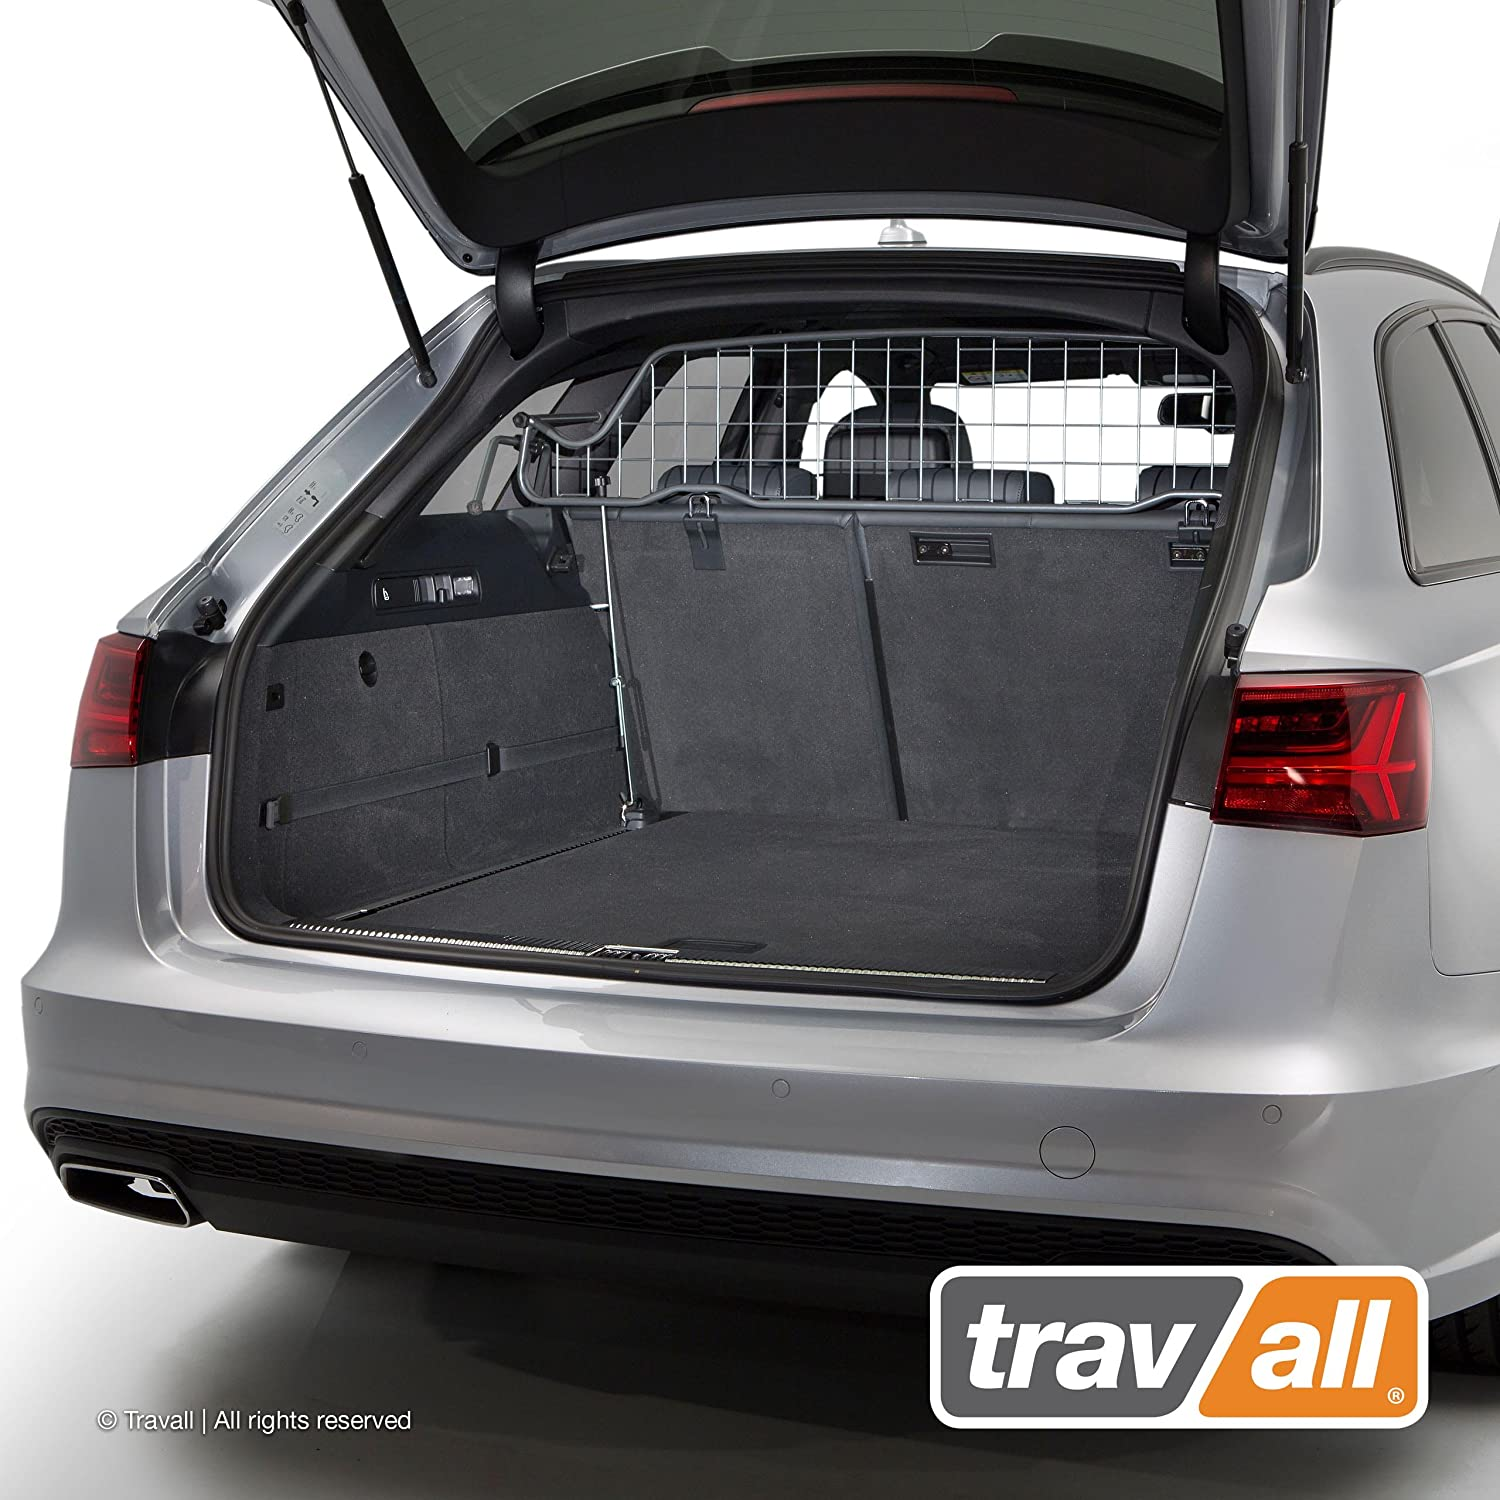 Travall Guard Tdg1535 Dog Guard Custom Made Protective Grille In Original Quality Auto